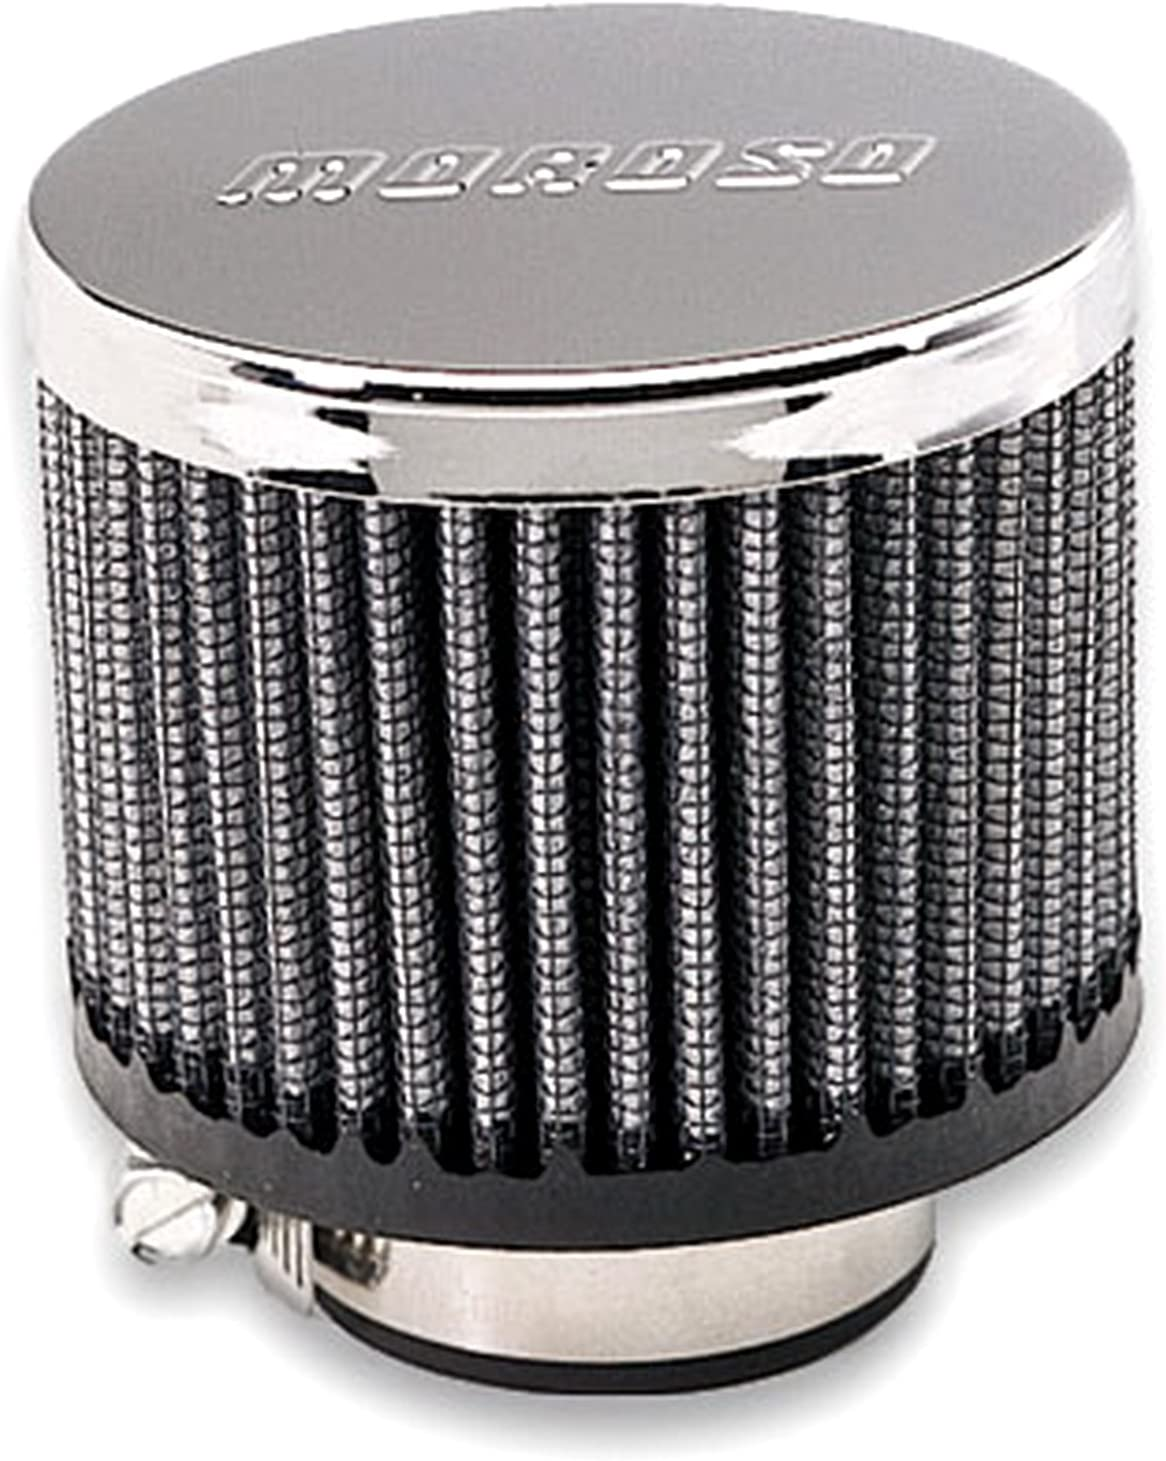 Large discharge sale Moroso VALVE COVER BREATHER NO CLAMP-ON New arrival HOOD